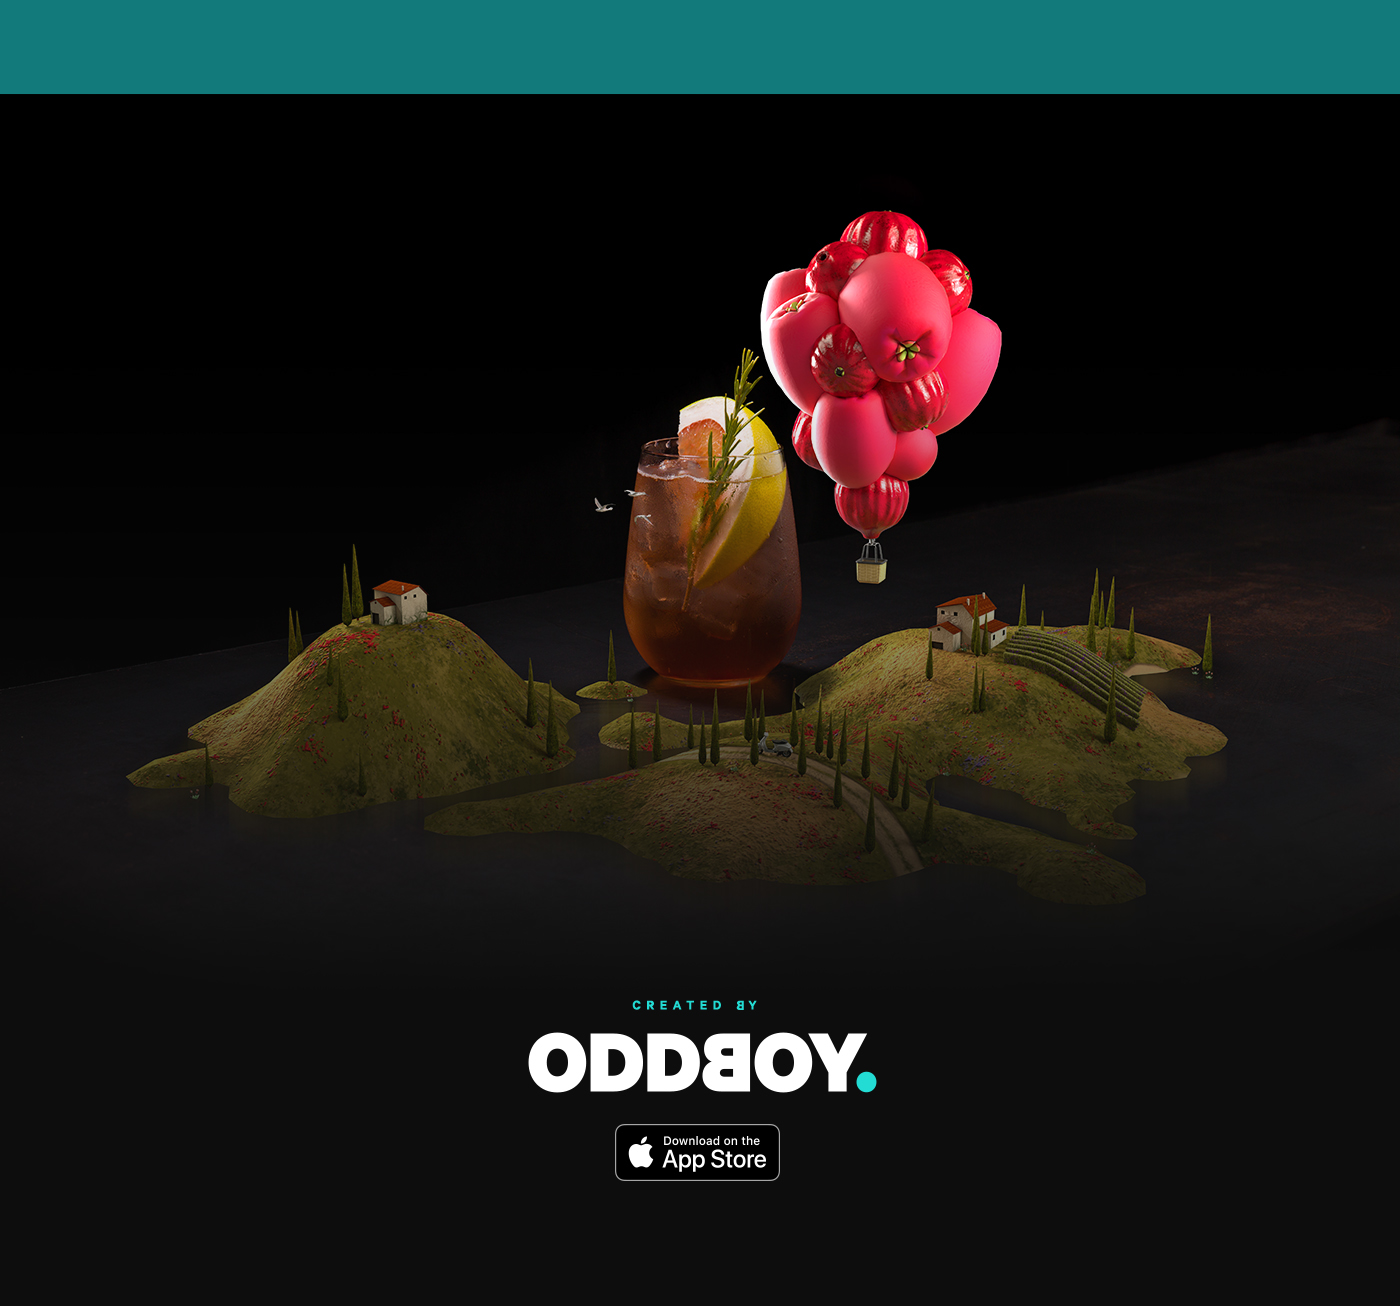 augmented reality,augmented,reality,AR,Virtual reality,app,Oddboy,3D